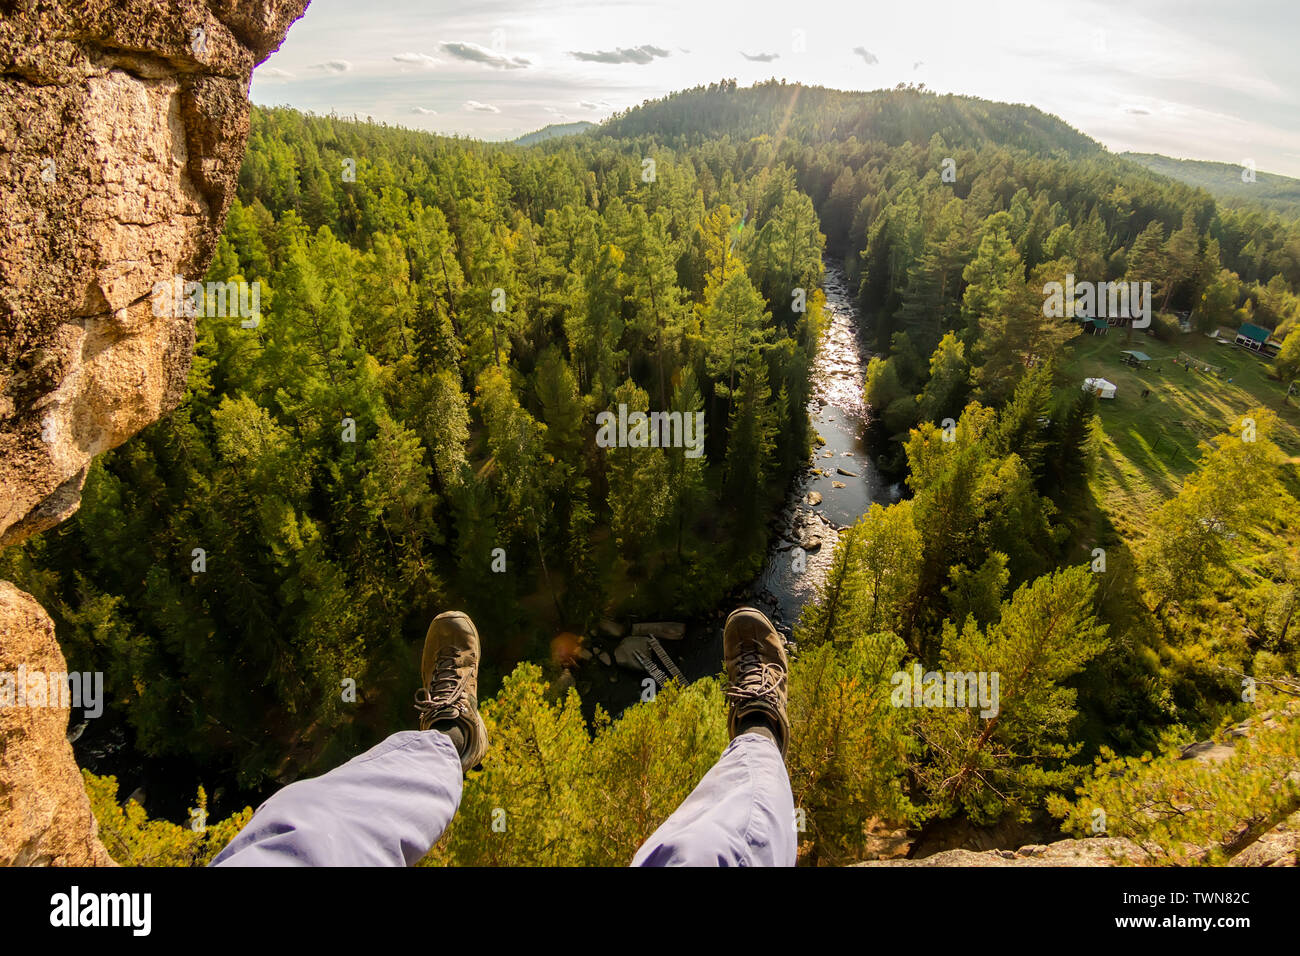 Climber's legs hanging on a rope in a harness, first person view to river in forest - Stock Image